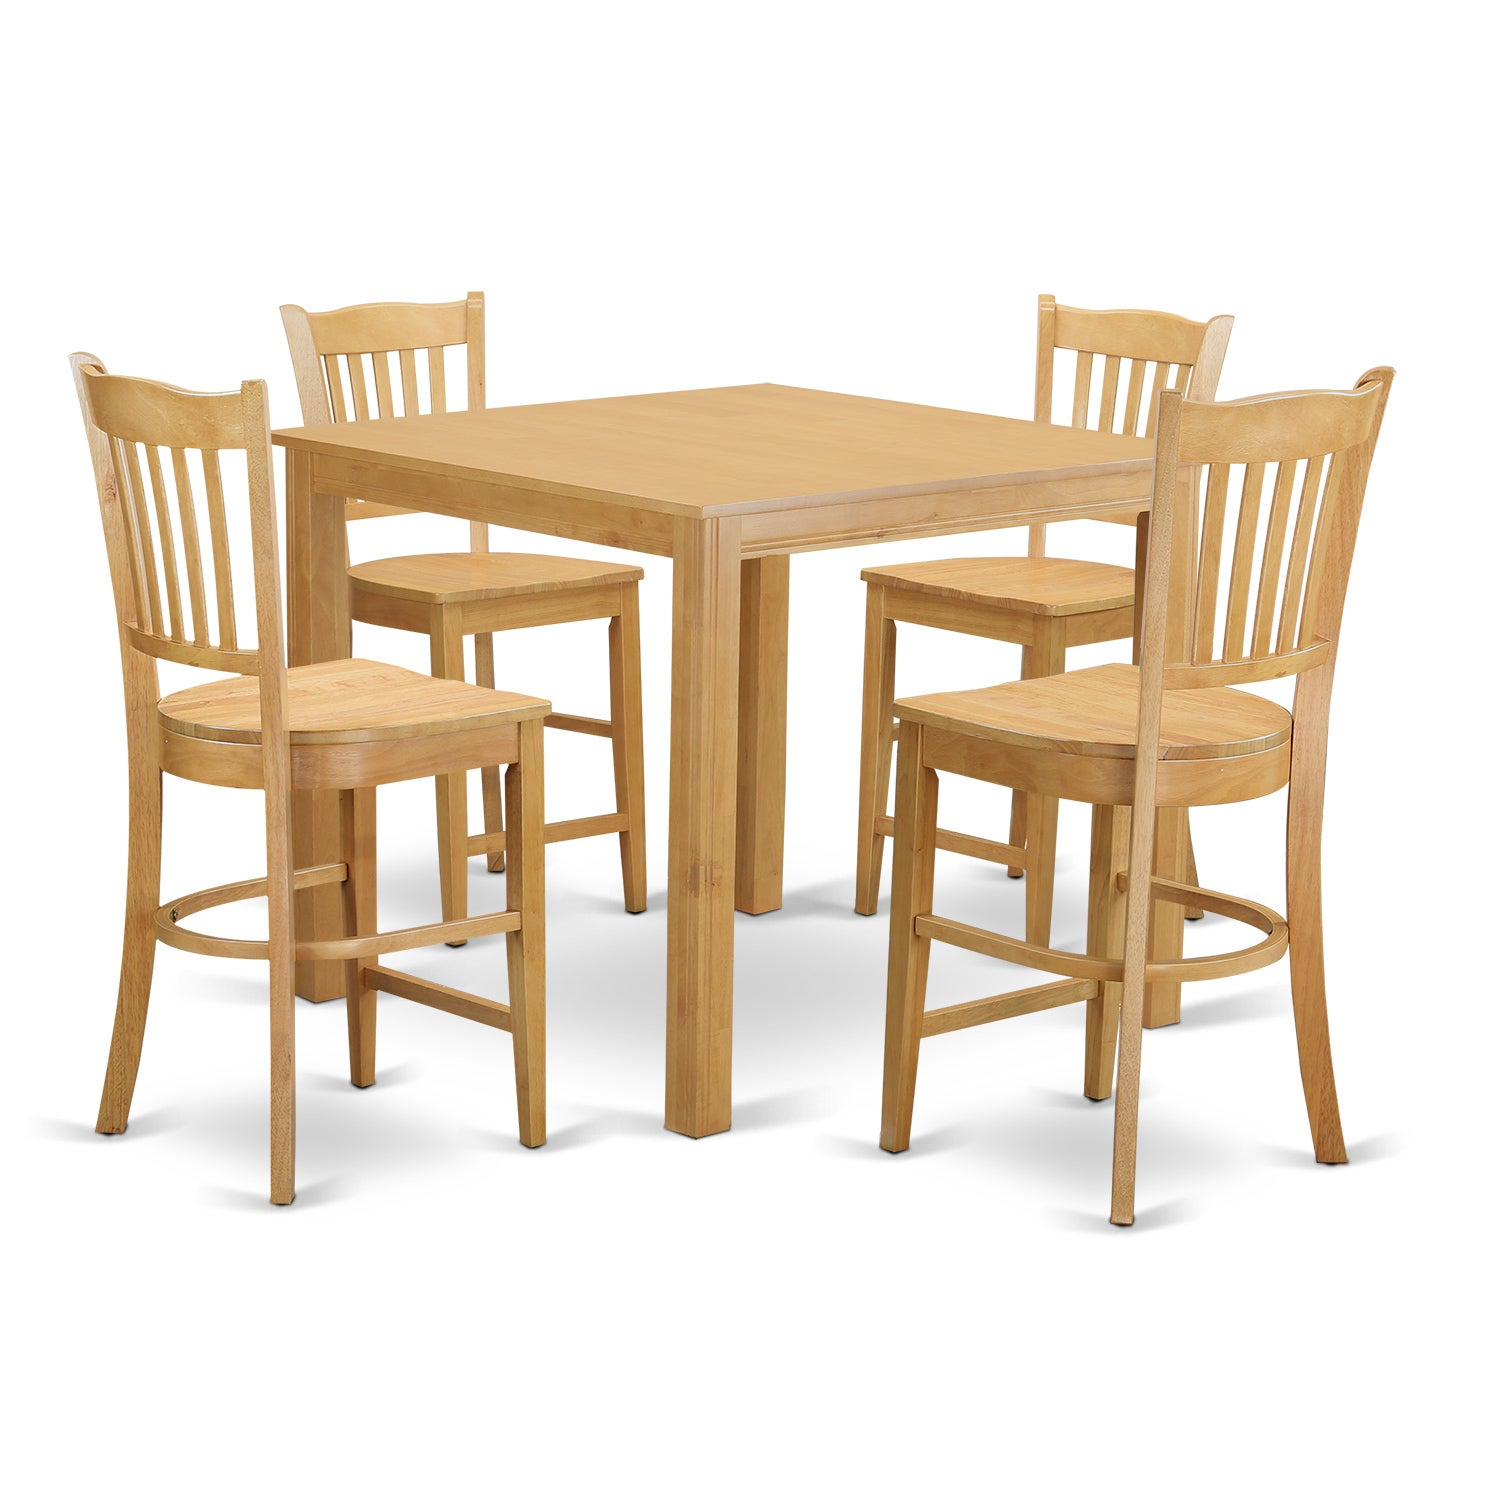 Oak Finish Rubberwood 5 Piece Dining Room Pub Set With Counter Height Table And 4 Chairs Free Shipping Today 12022912